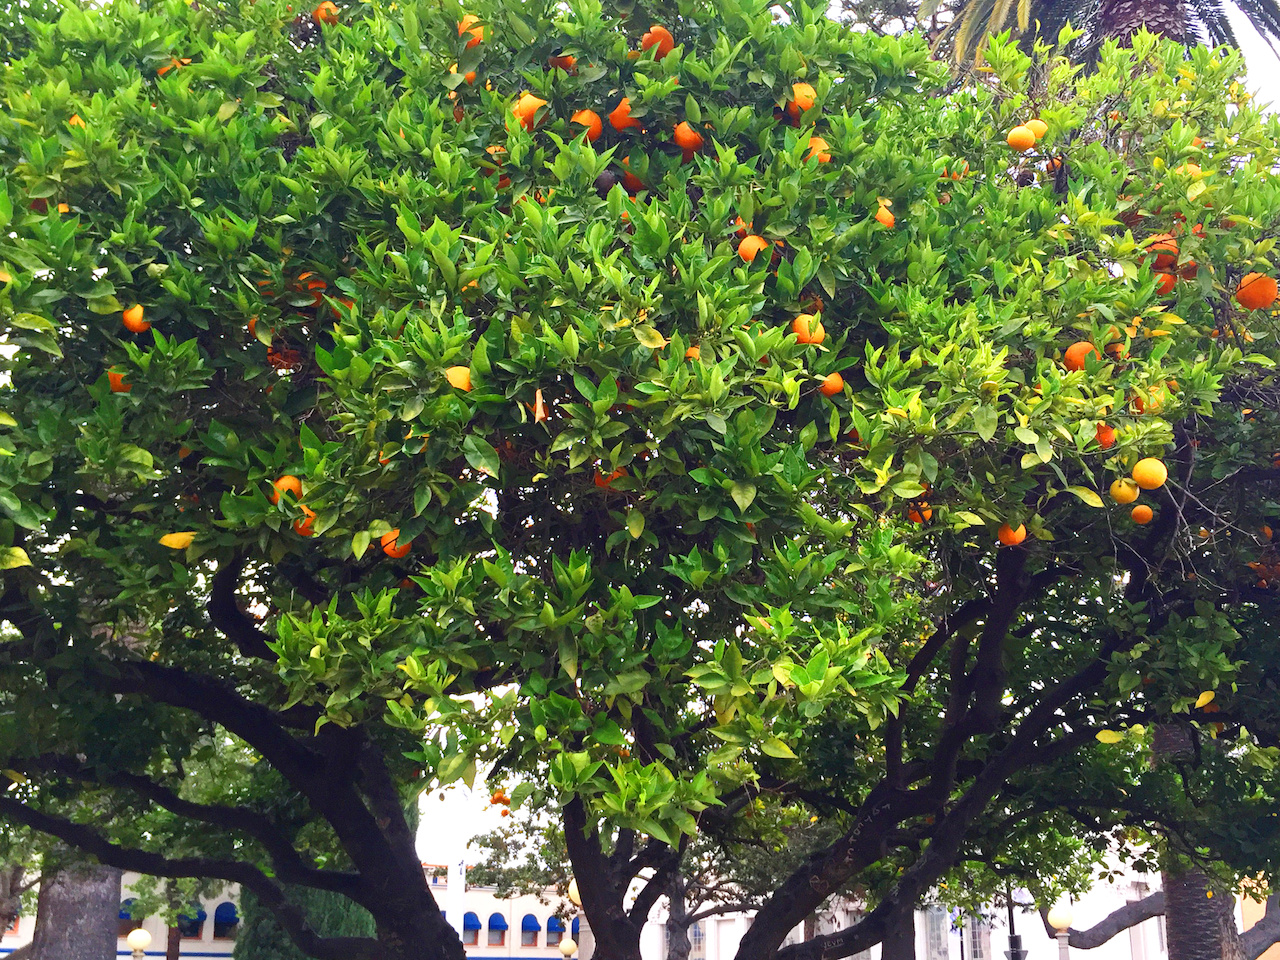 Huge orange trees dot the plaza and Old Towne Orange.